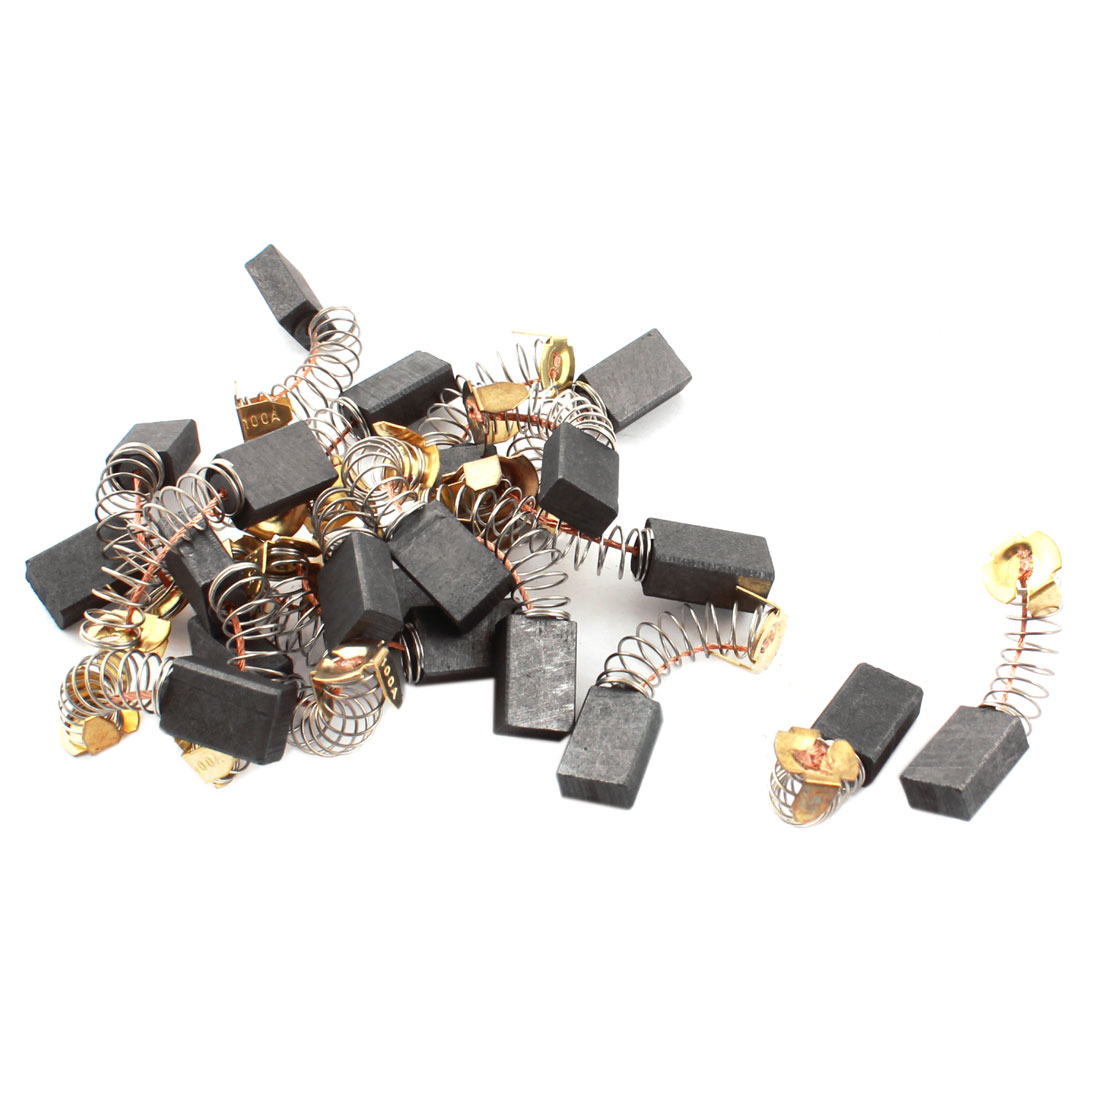 20 Pcs/lot 15mm x 10mm x 6mm Carbon Brushes for Generic Electric Motor<br><br>Aliexpress